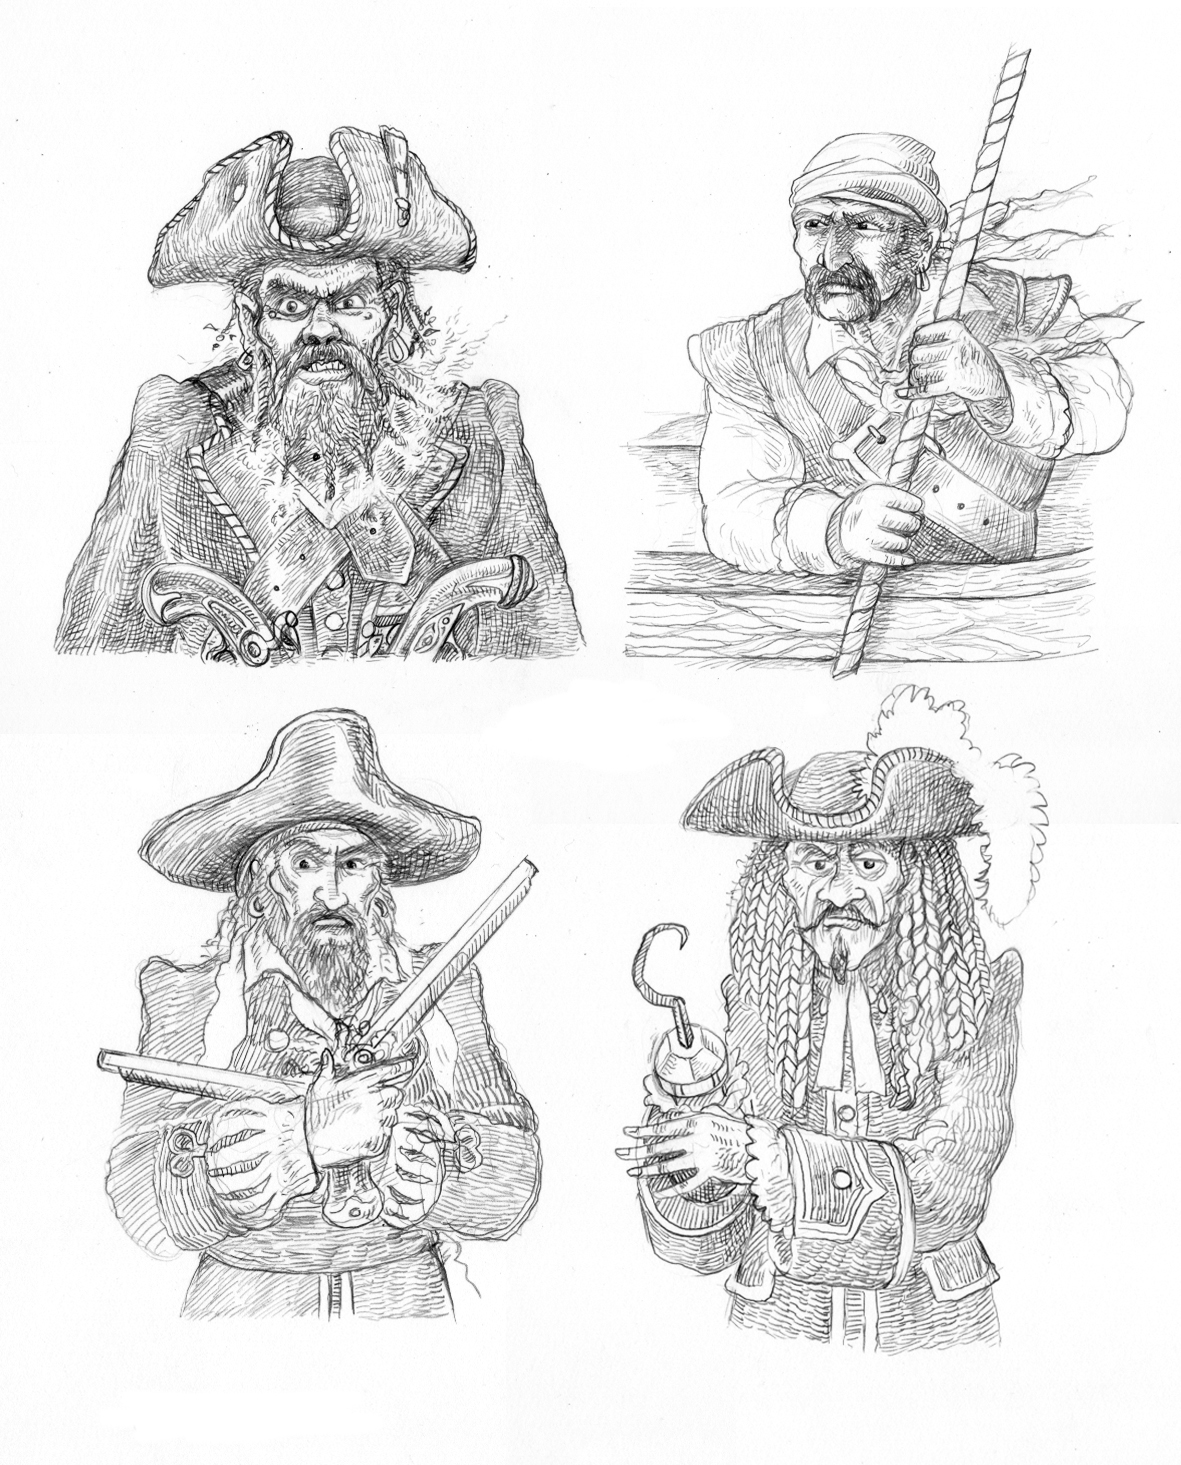 Pirate Sketches ©CUP